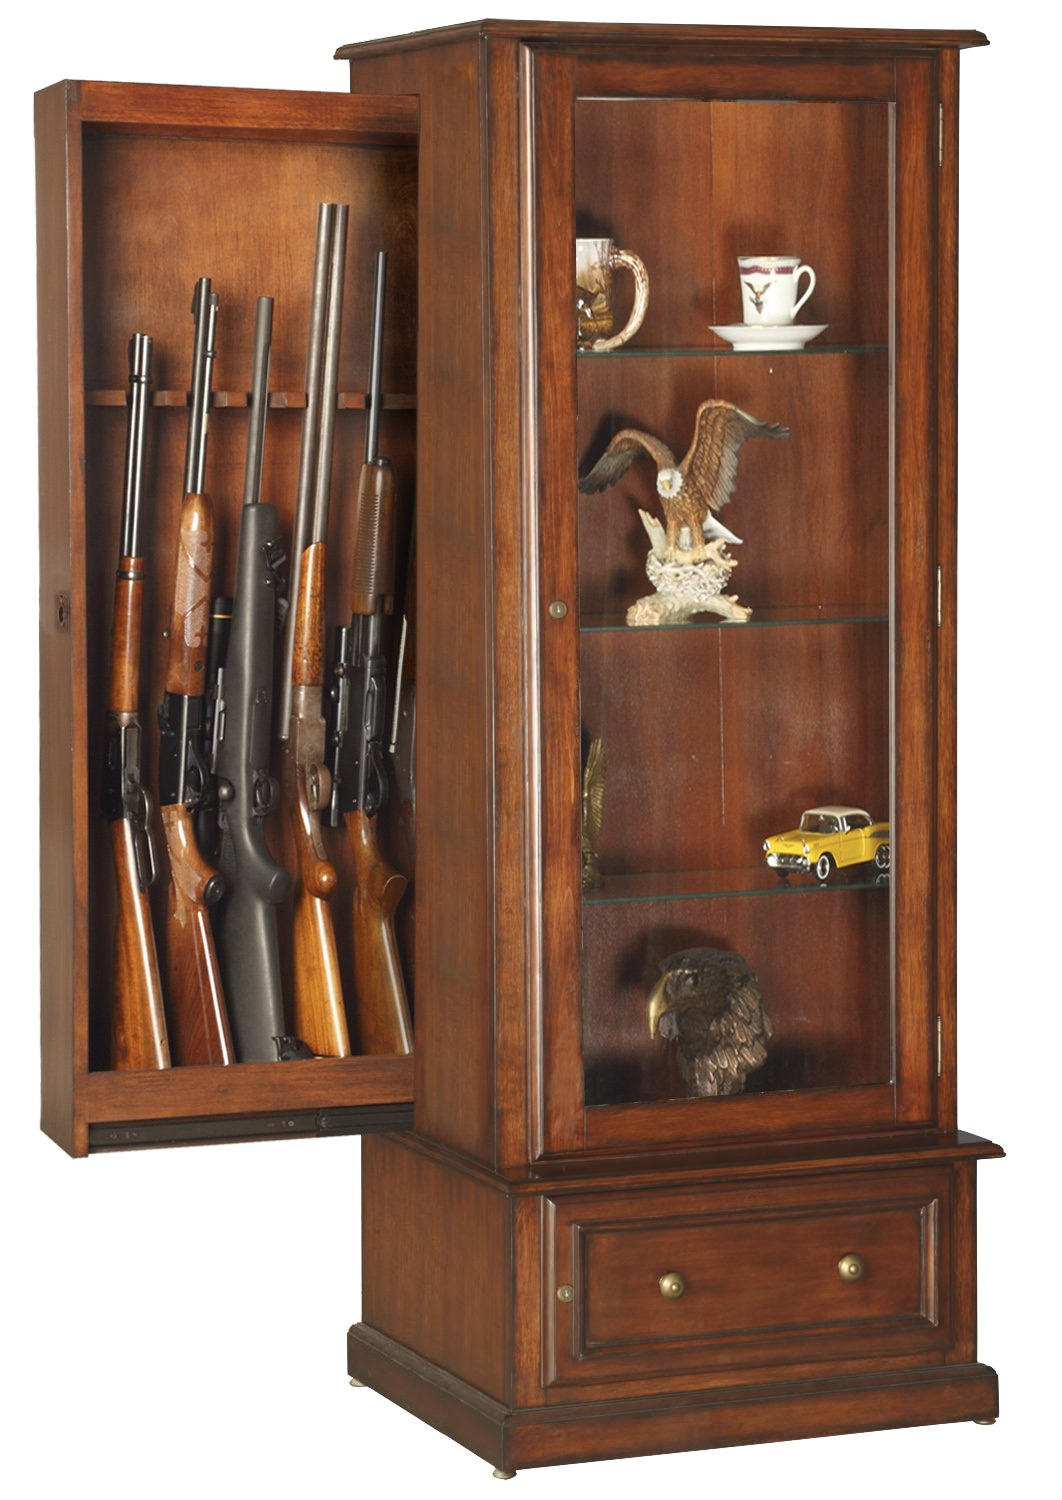 Wooden Gun Cabinet With Etched Glass | kashiori.com Wooden Sofa ...